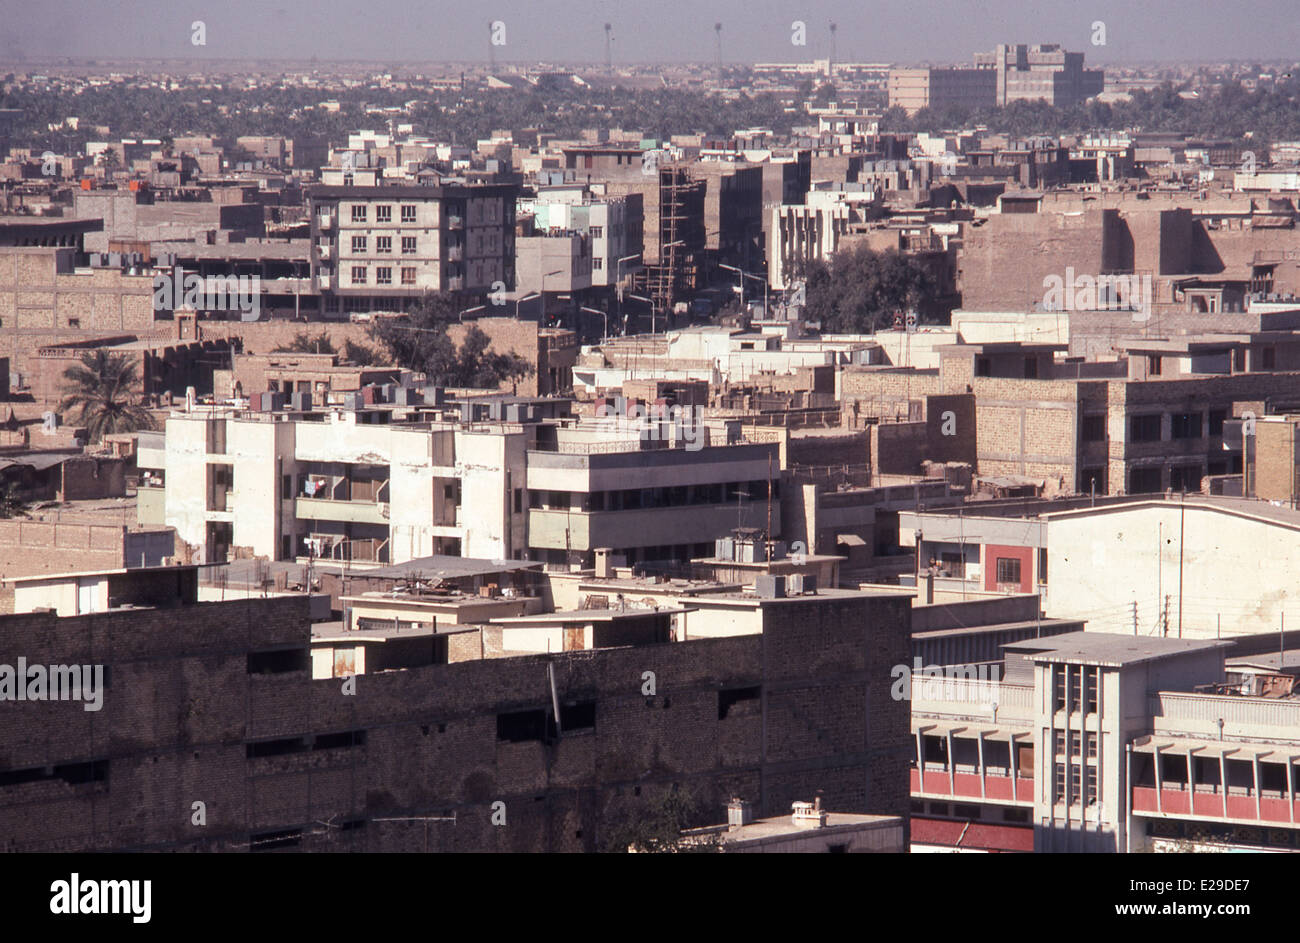 Modern housing blocks apartments in suburb of Baghdad in early 1980s Iraq Middle East - Stock Image